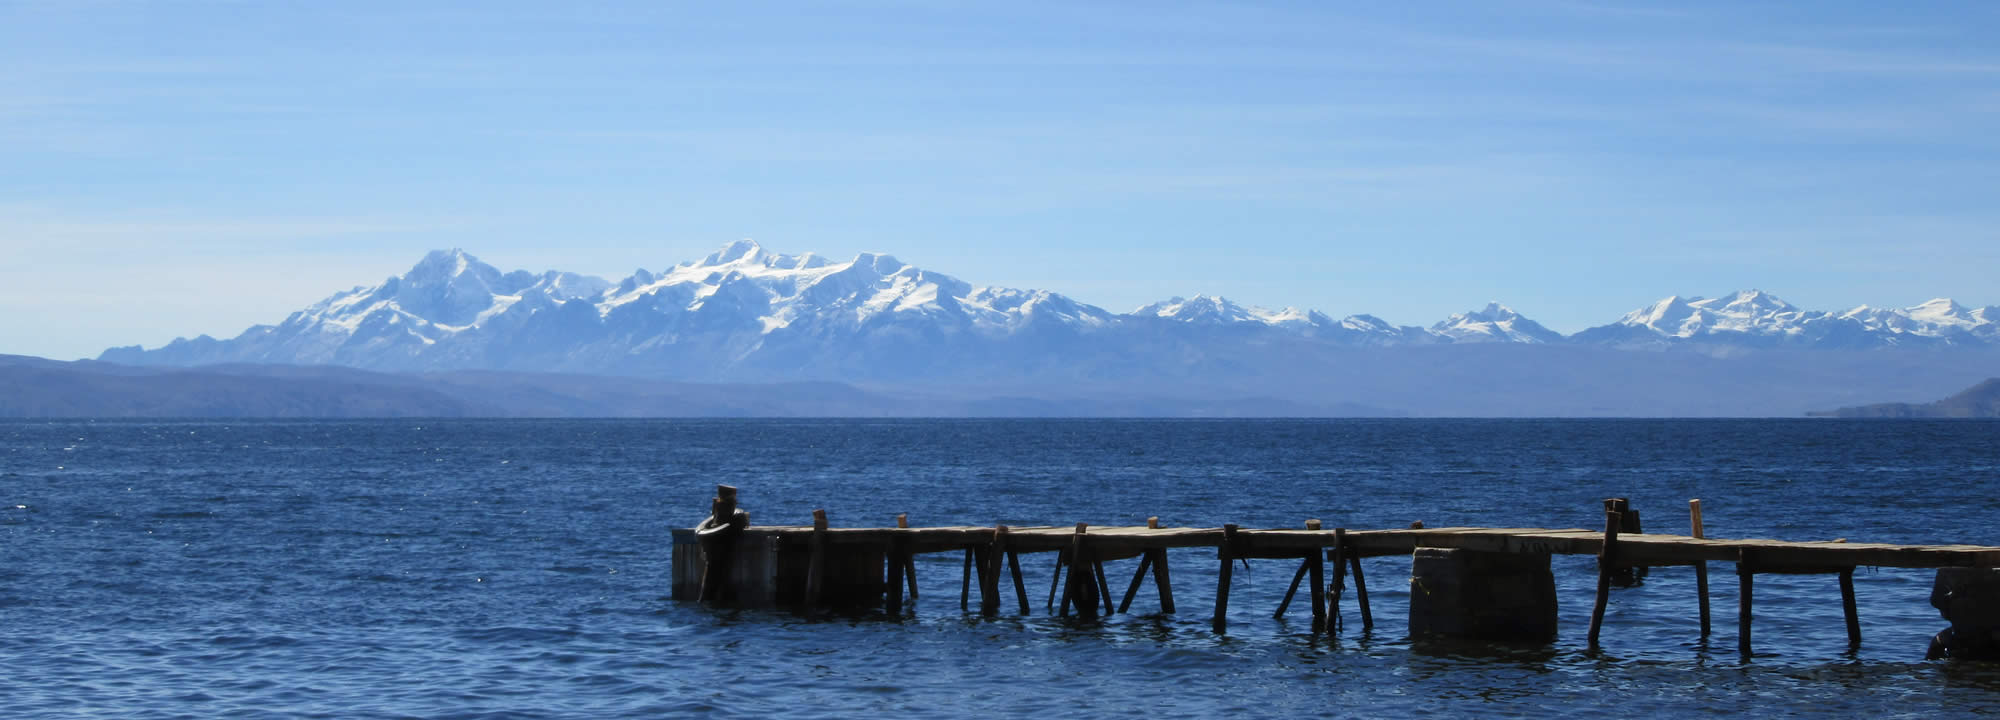 Discover Lake Titicaca and the Sun Island!